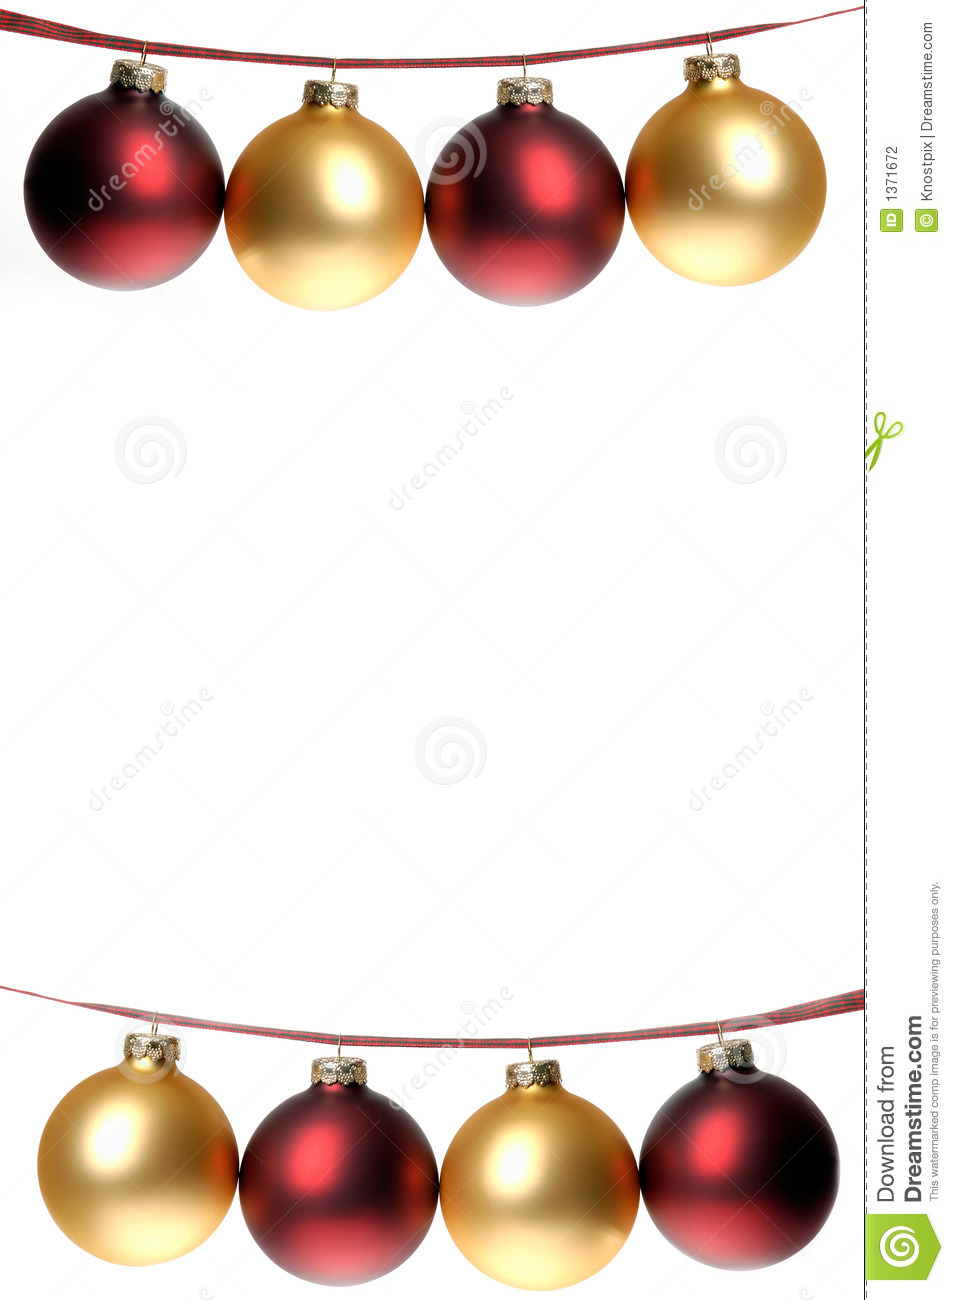 Gold and red ornaments - Christmas Photo Two Rows Of Red And Gold Ornaments Strung On Pl